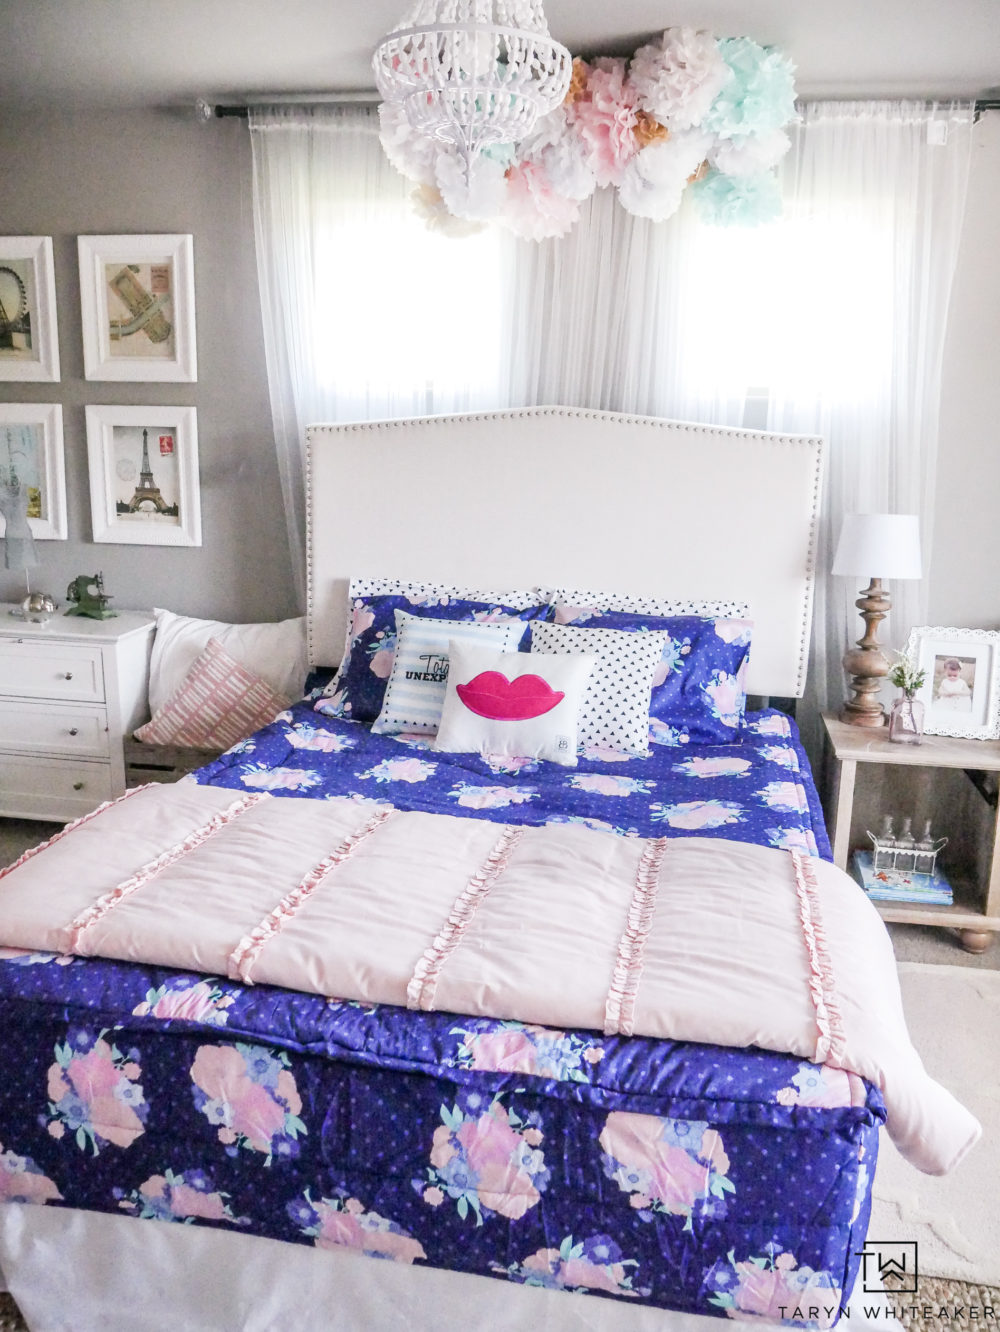 Cute and fun little girls room with new zipper Beddy's Bedding! Just zip on and off for easy use!